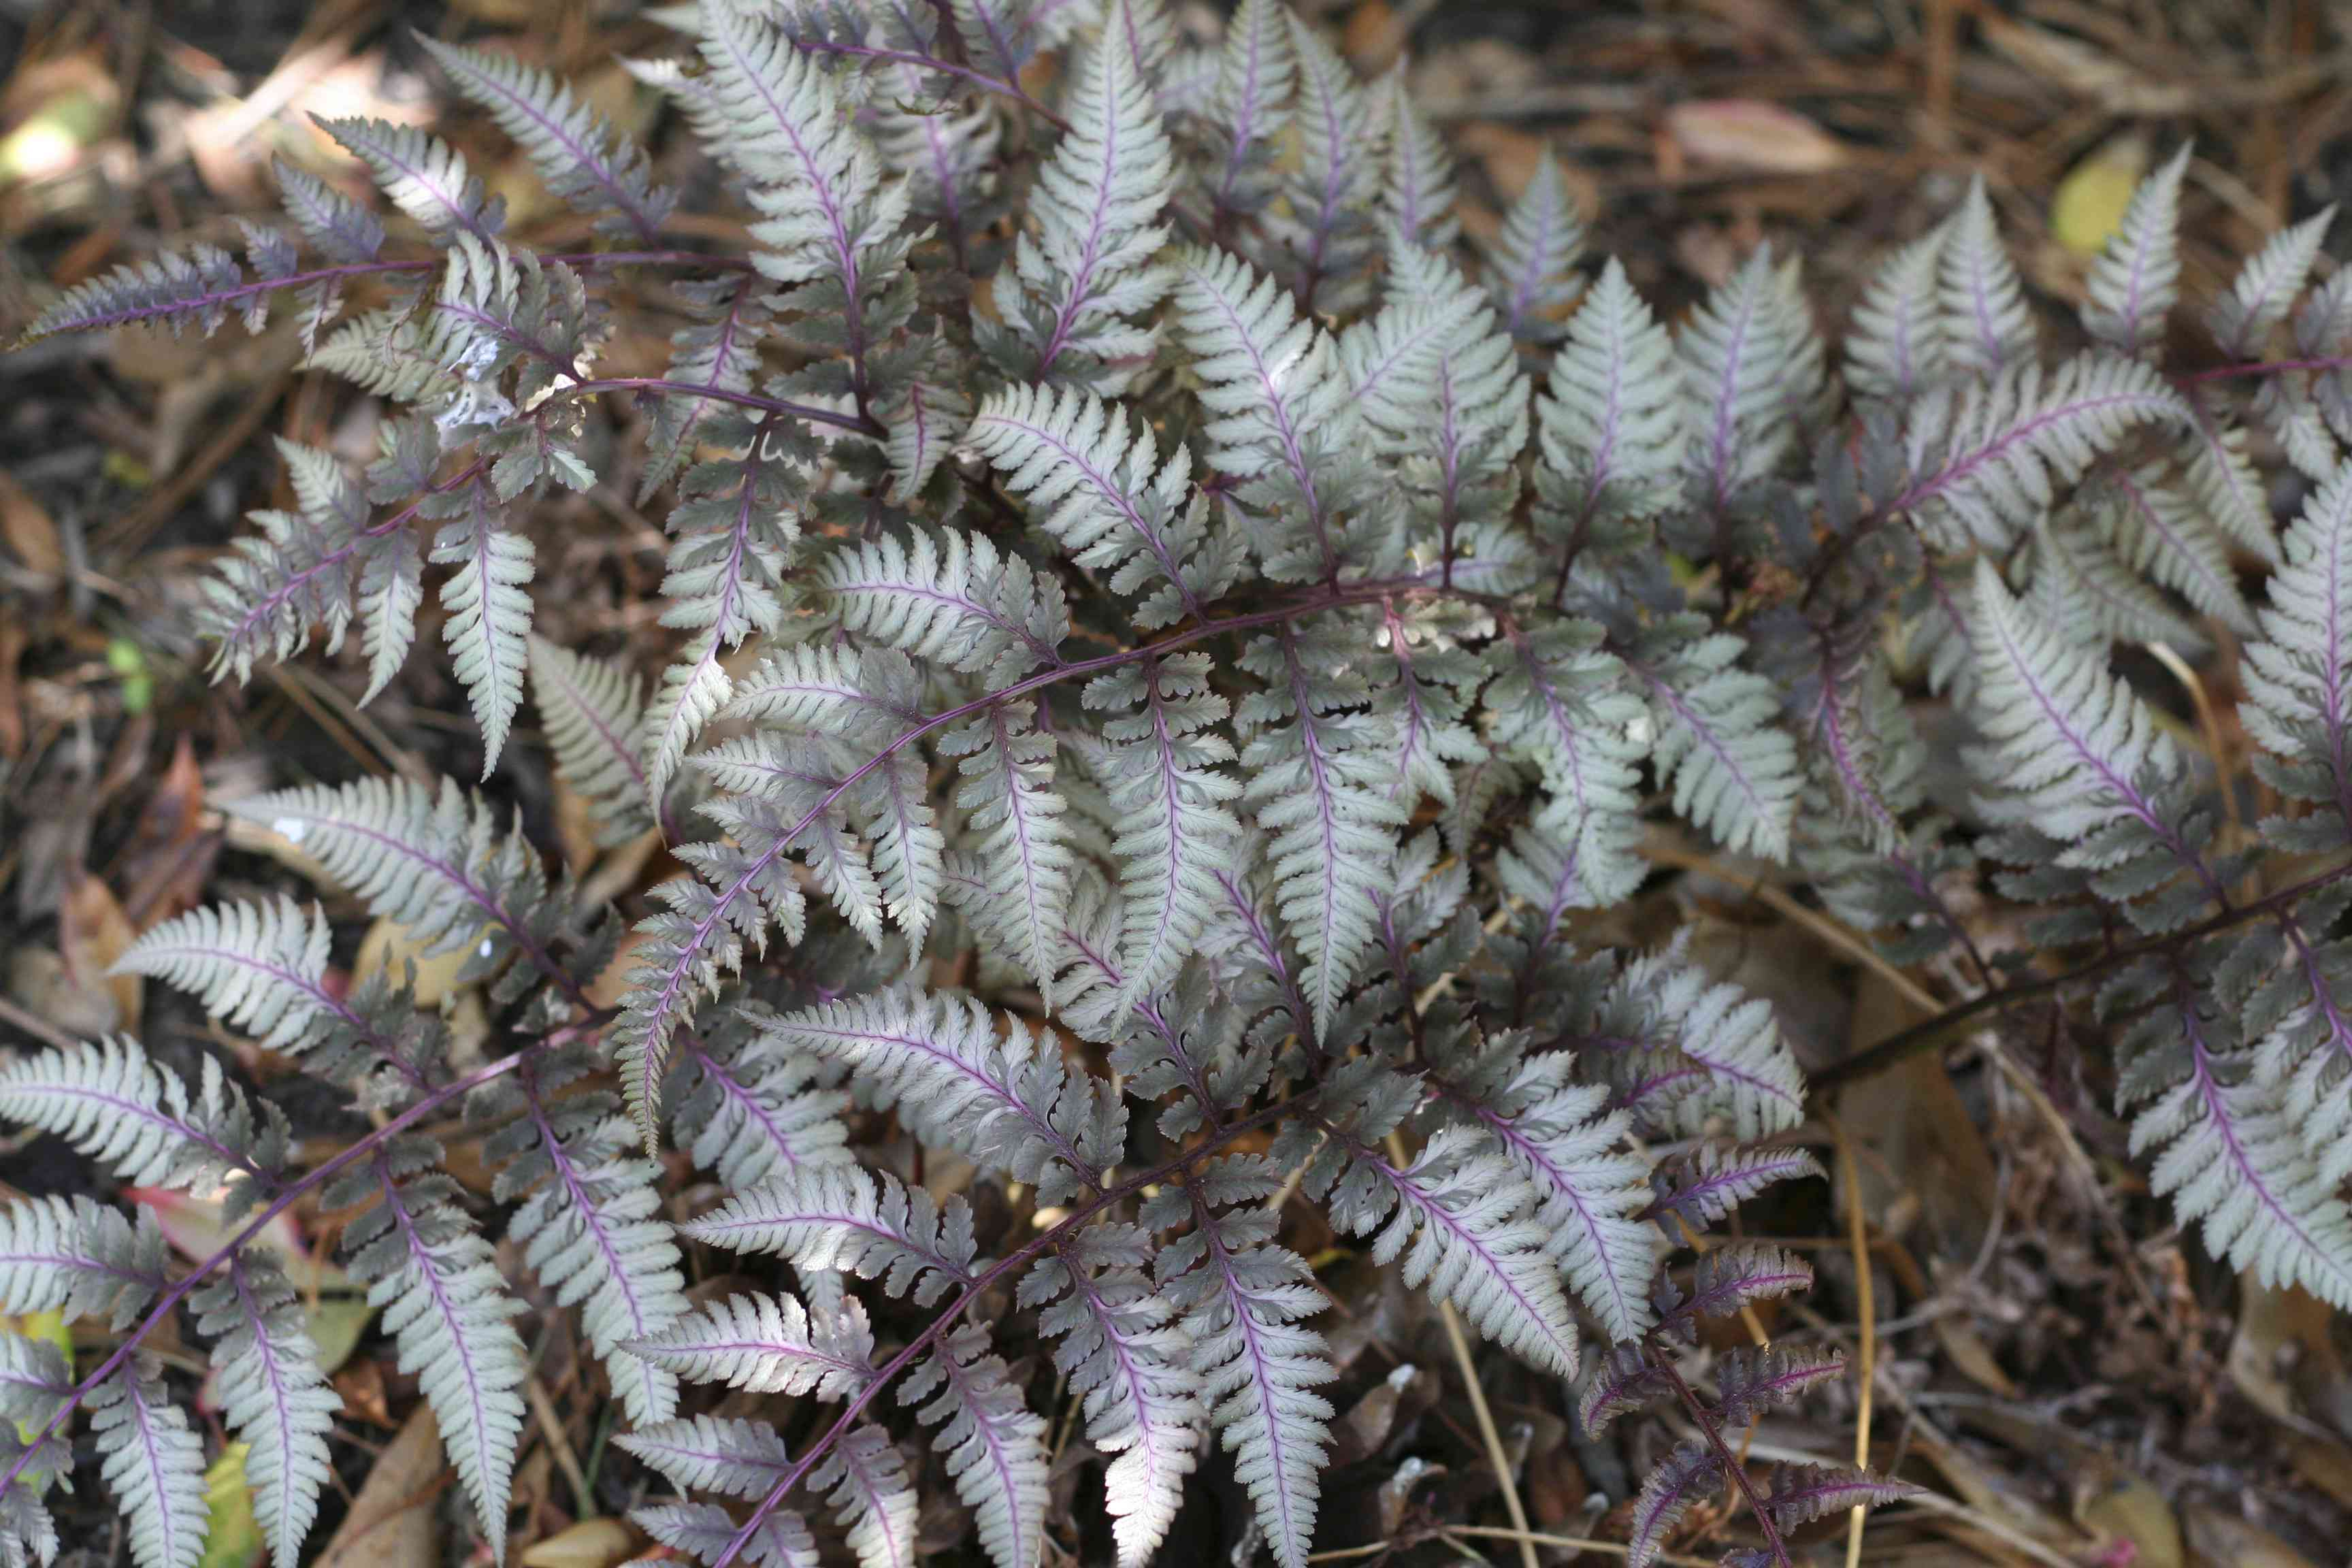 Fronds of Japanese painted fern.